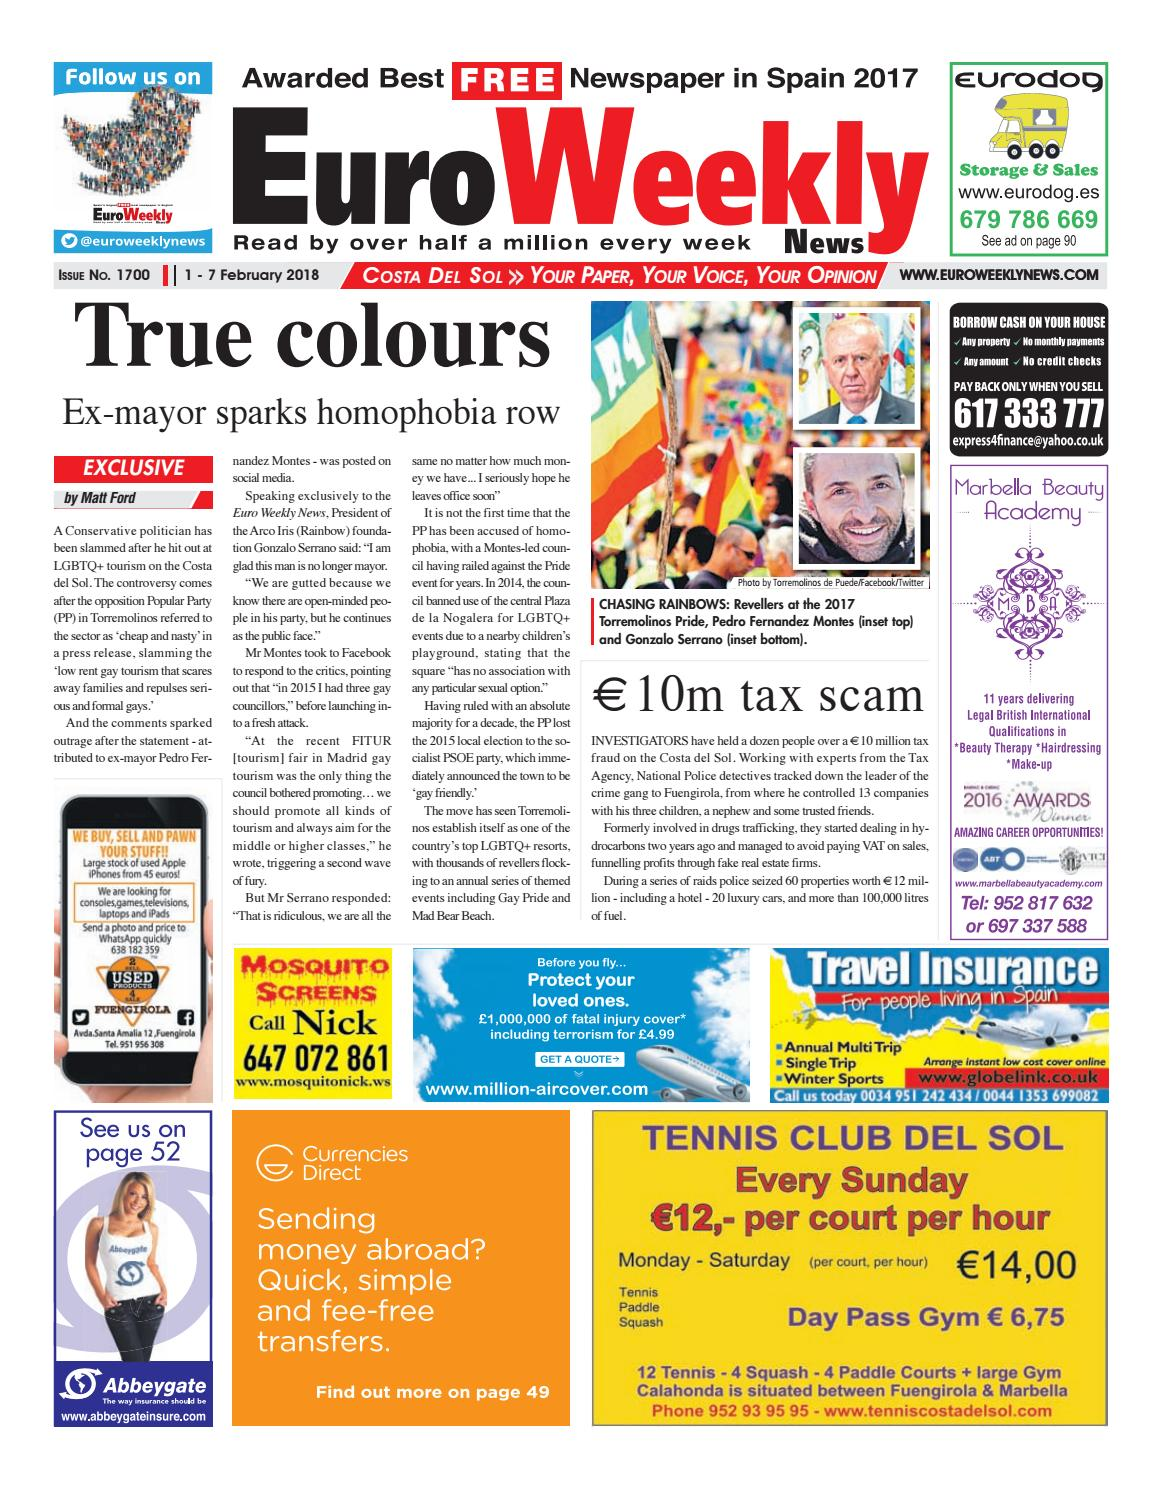 Euro Weekly News - Costa del Sol 1 - 7 February 2018 Issue 1700 by Euro  Weekly News Media S.A. - issuu 30113a153